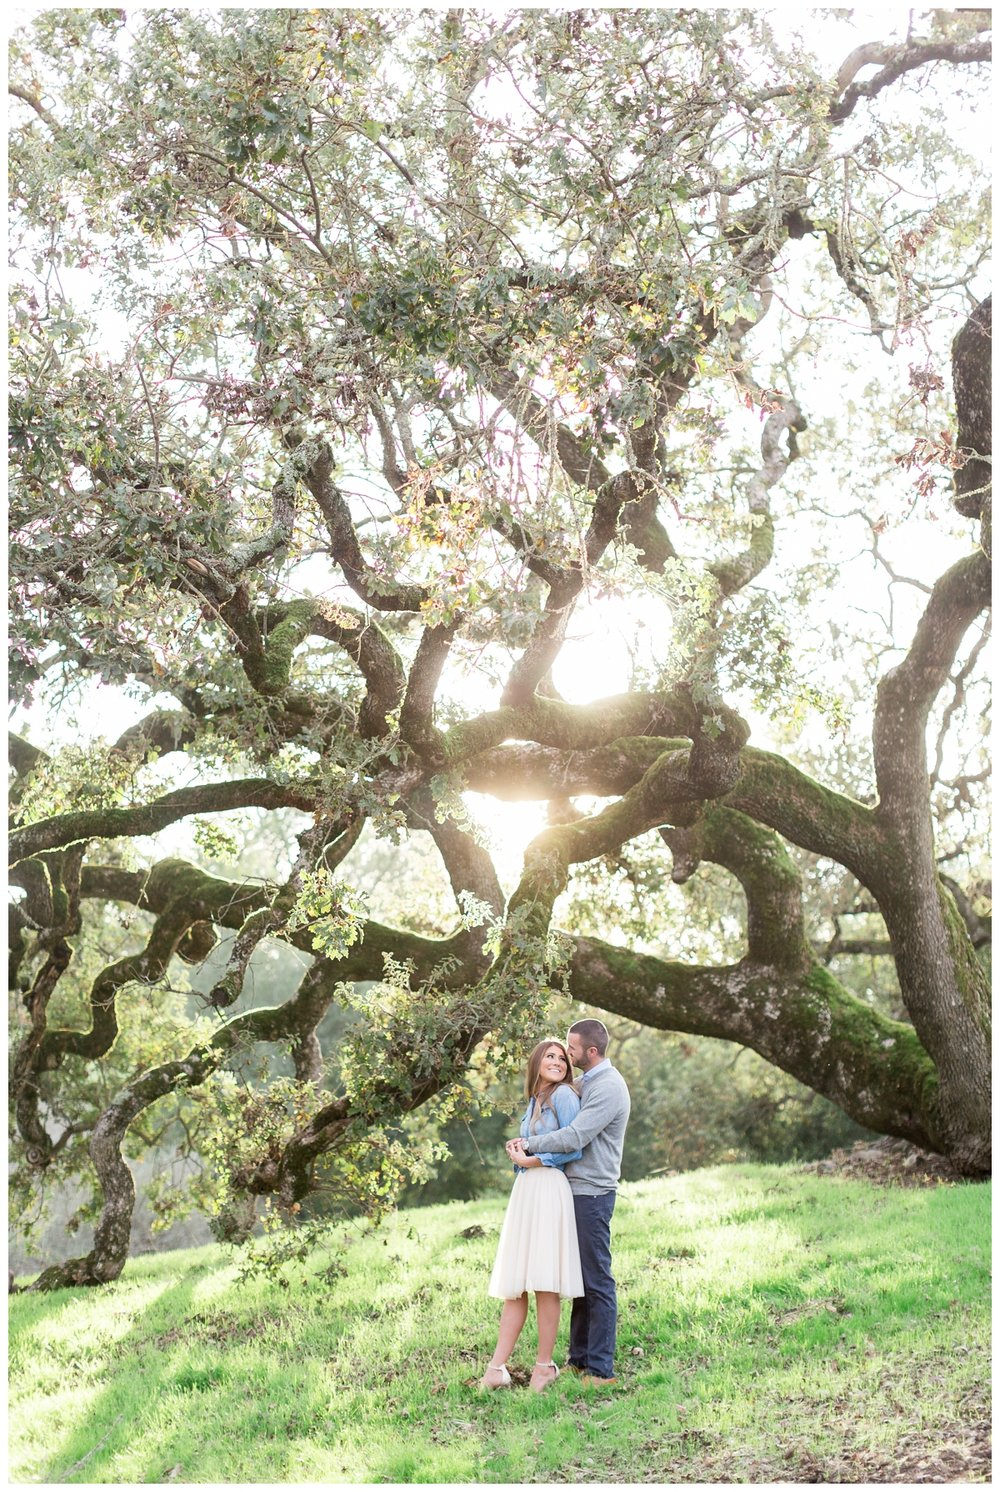 Crane Creek Park engagement photographer in Sonoma County